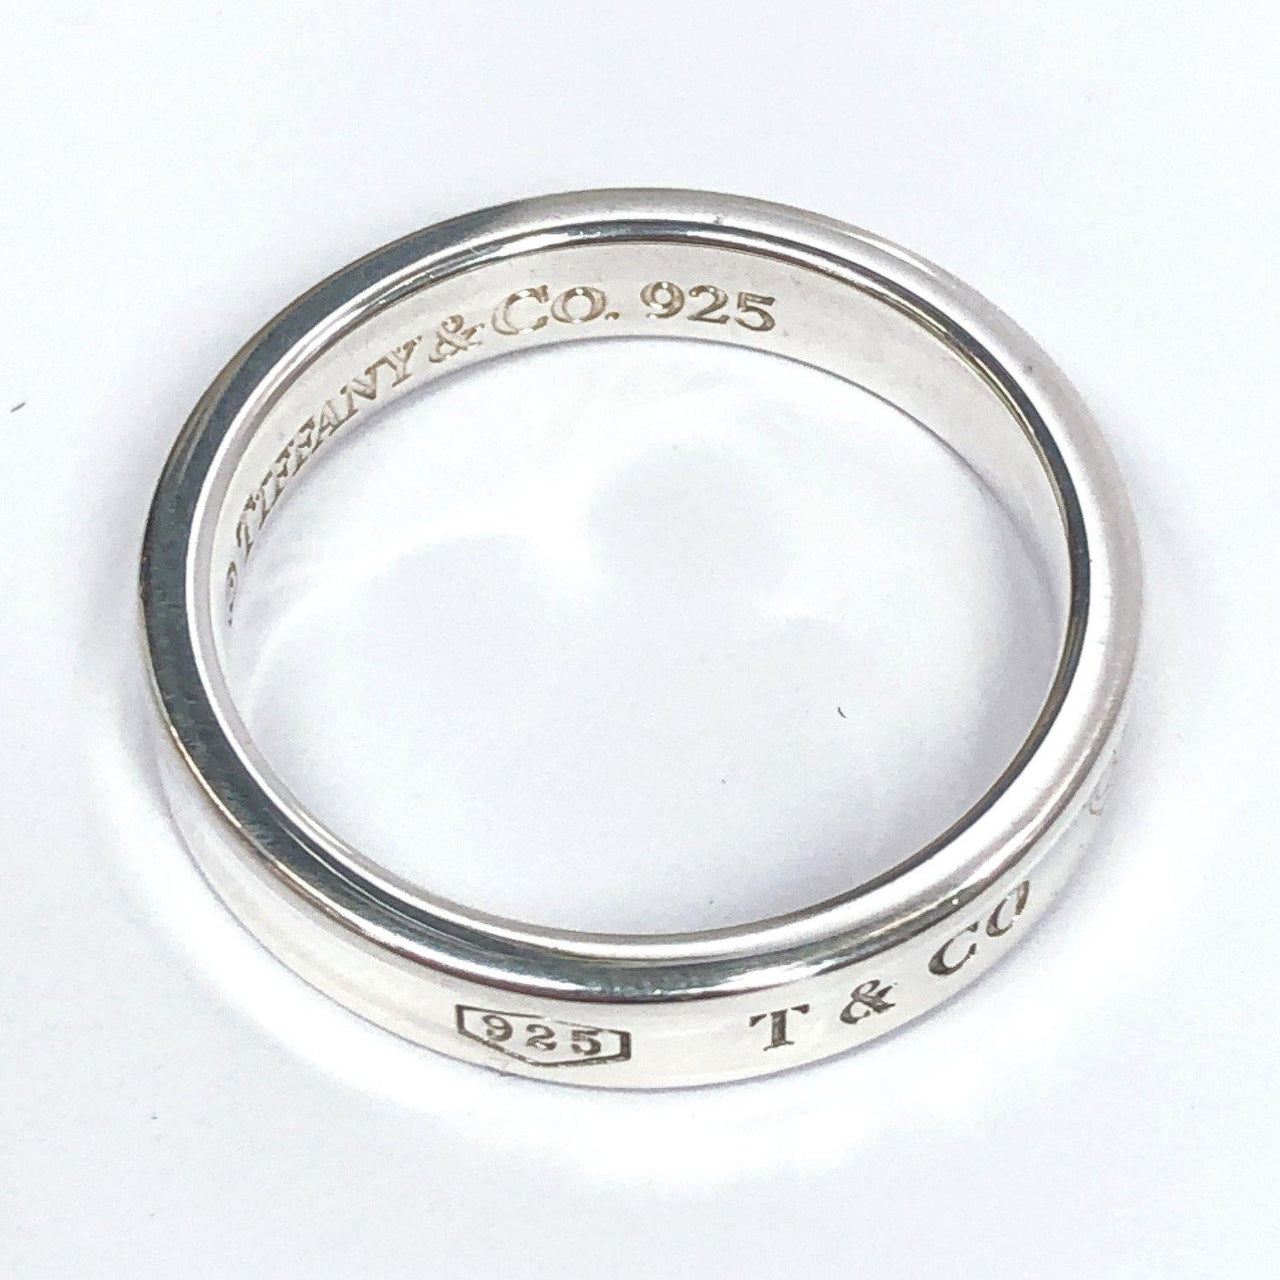 TIFFANY&Co. Ring 1837 Silver925 16 Silver mens Used - JP-BRANDS.com